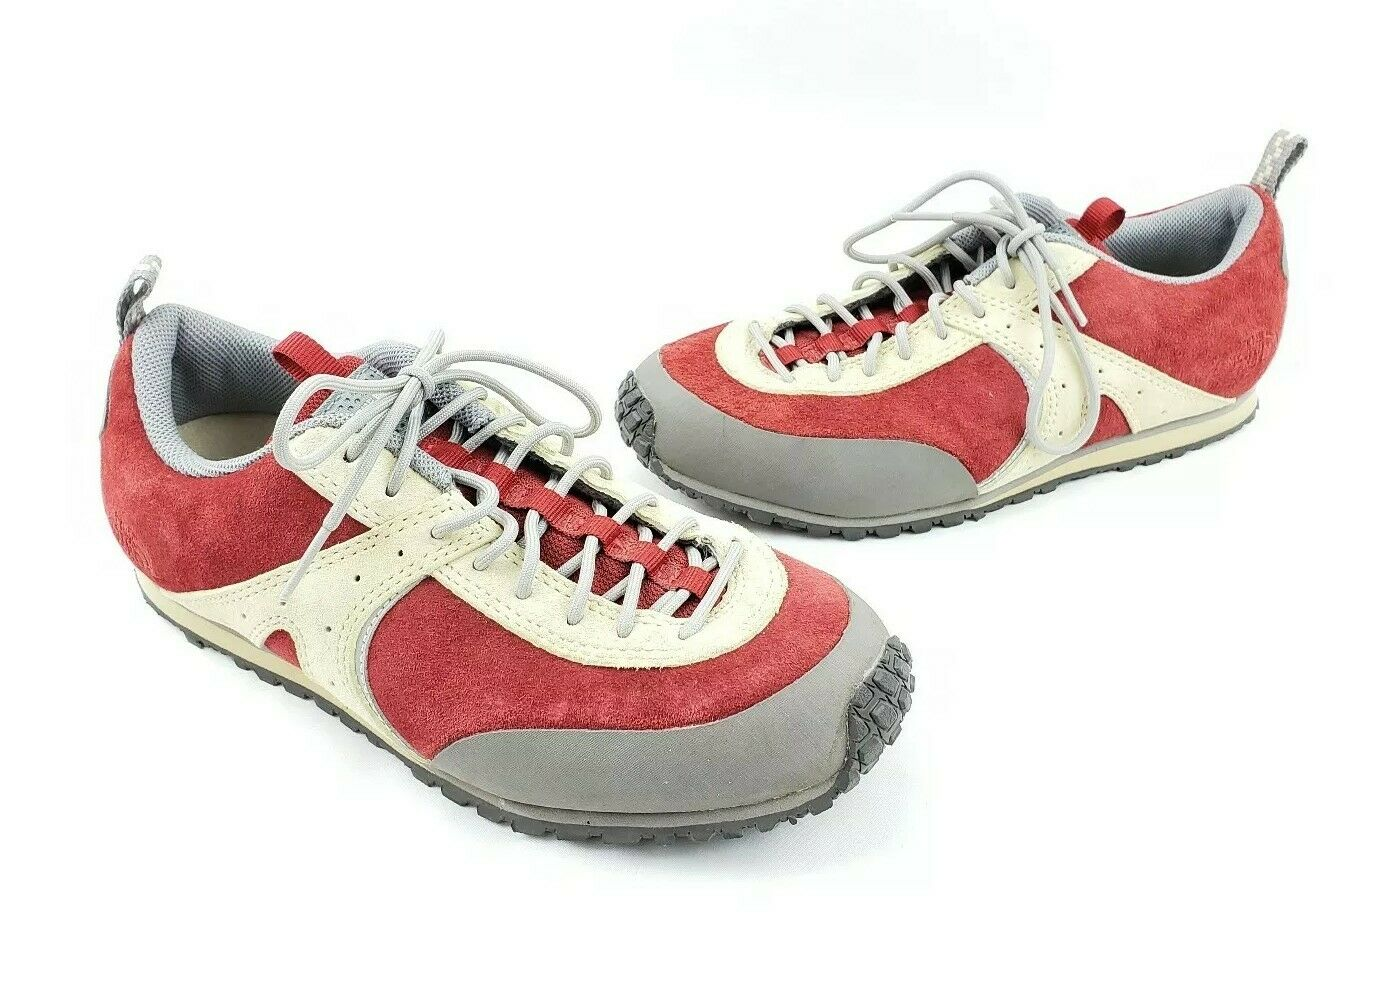 The NORTH FACE Vibram Women's A5 Retro Style shoes Size 6 Red Beige